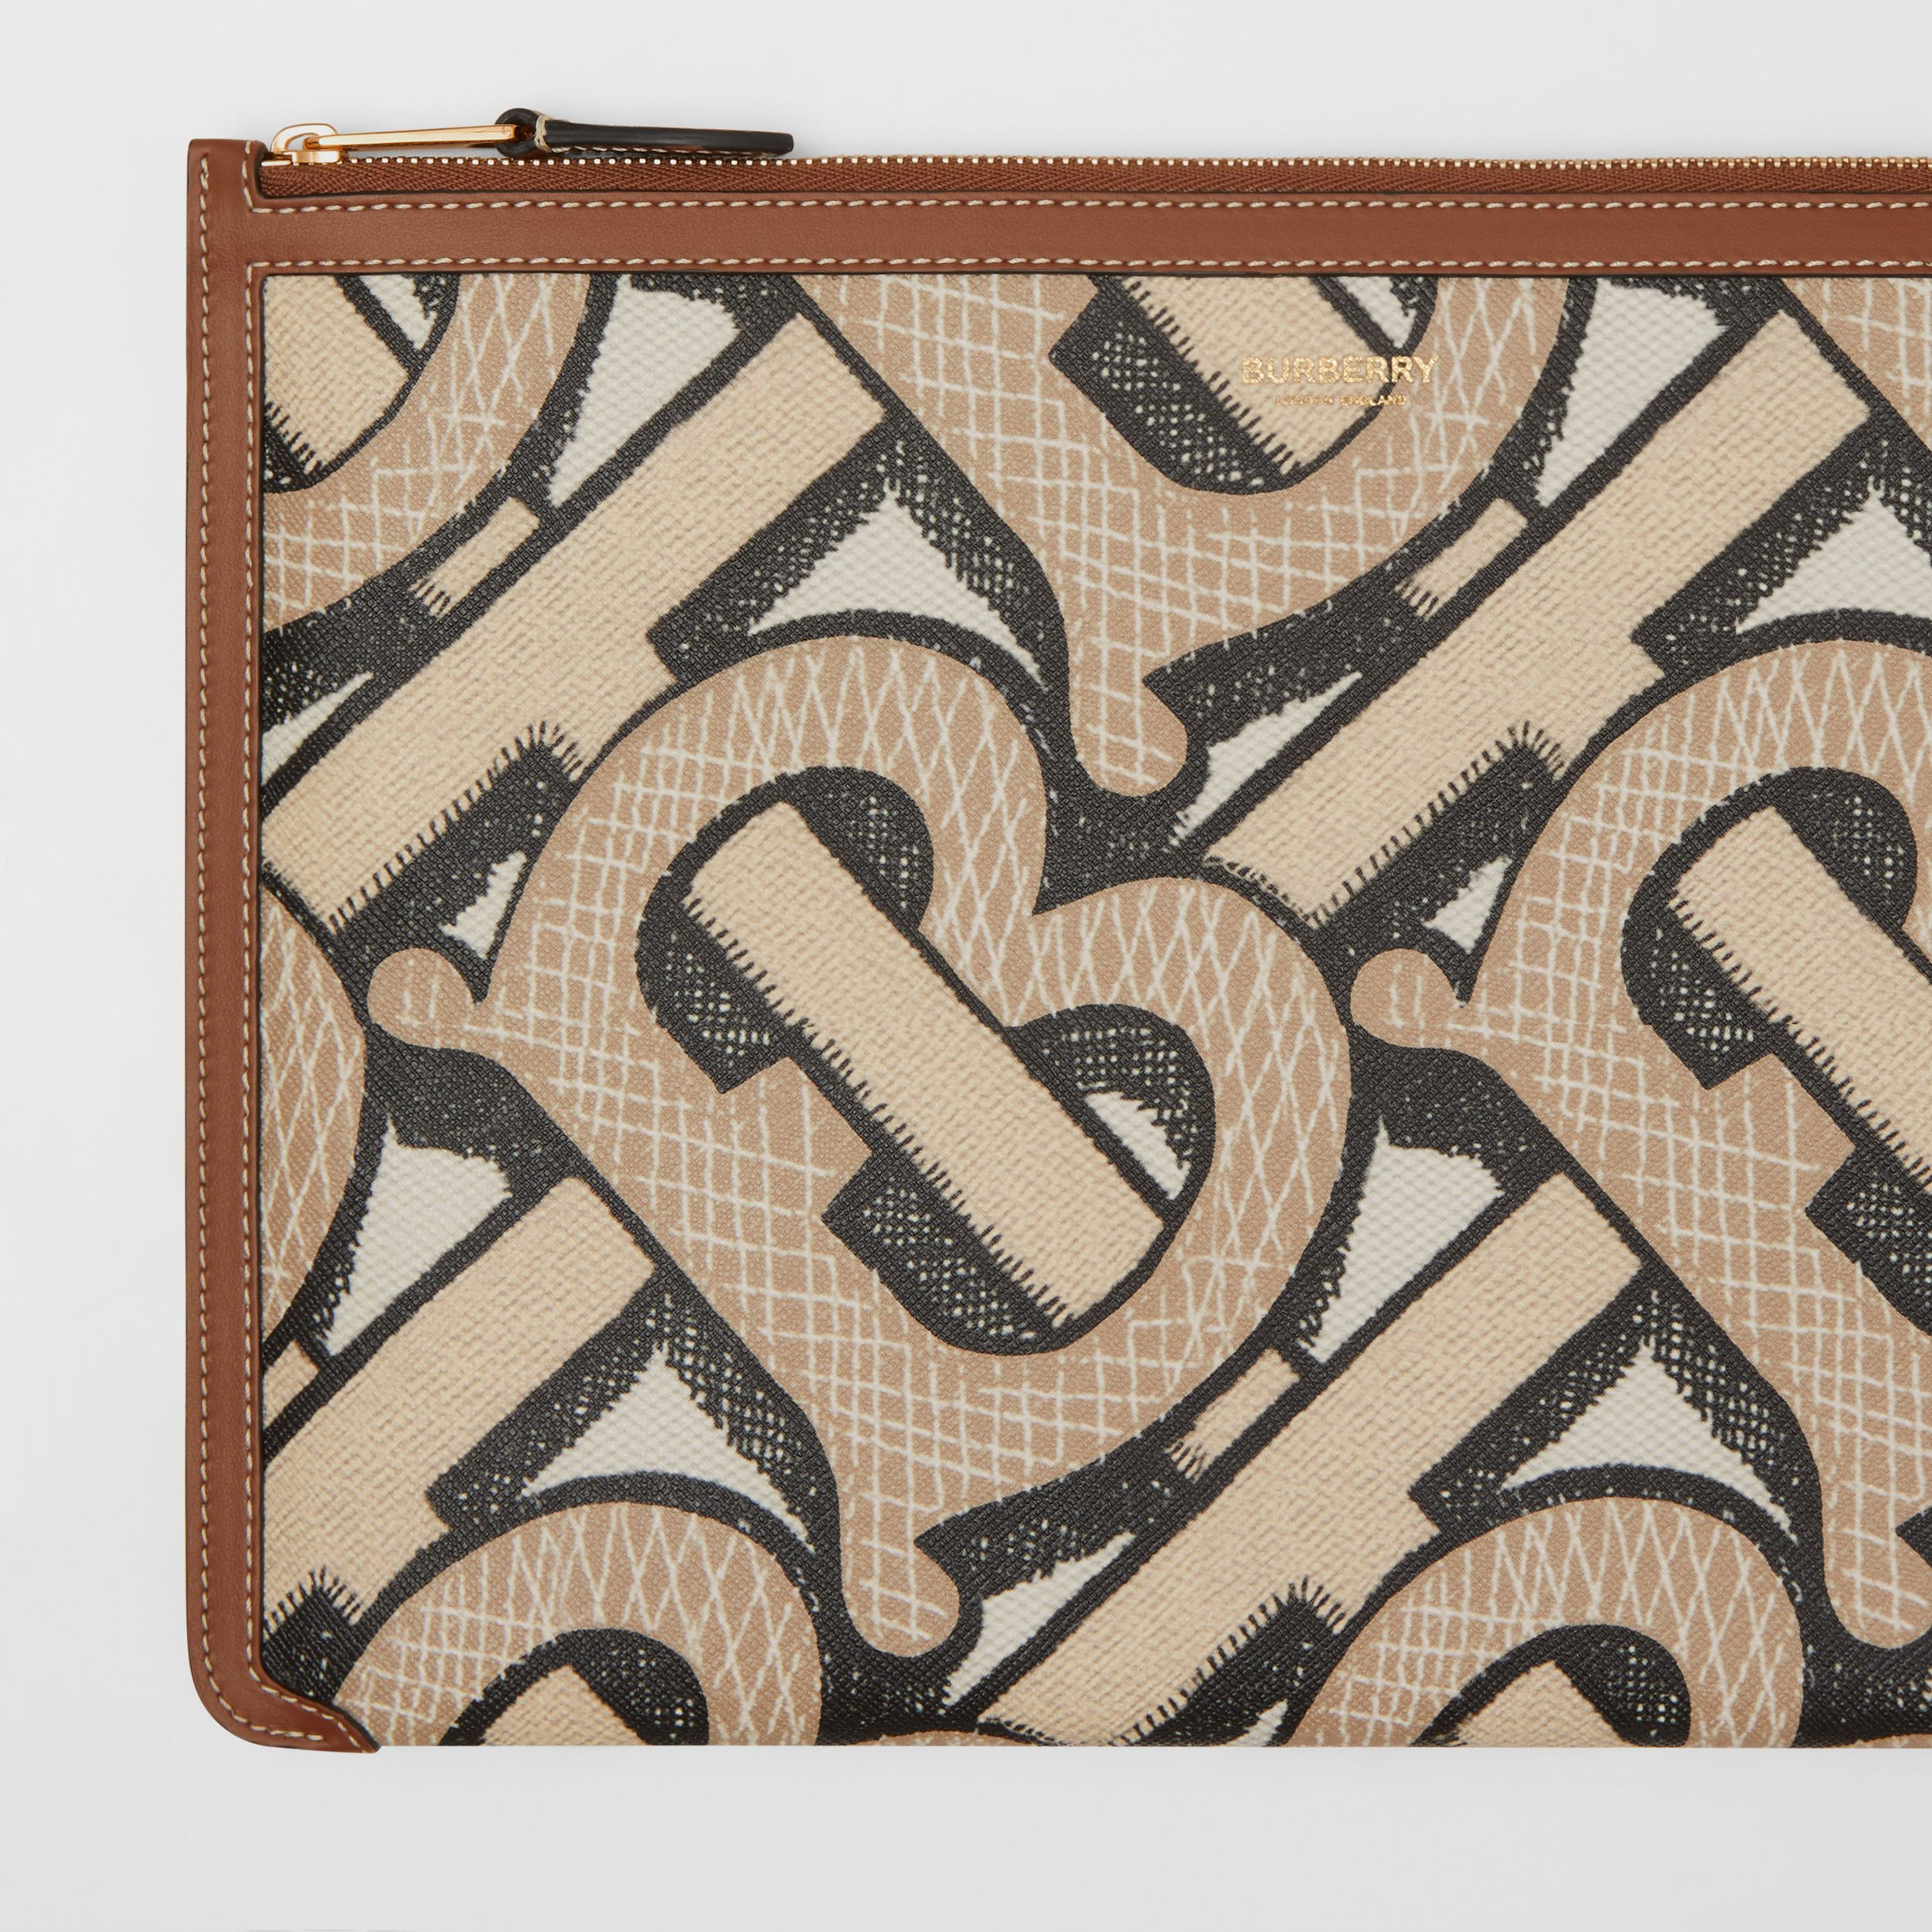 Monogram Print E-canvas and Leather Pouch in Dark Beige - Women | Burberry United Kingdom - 2